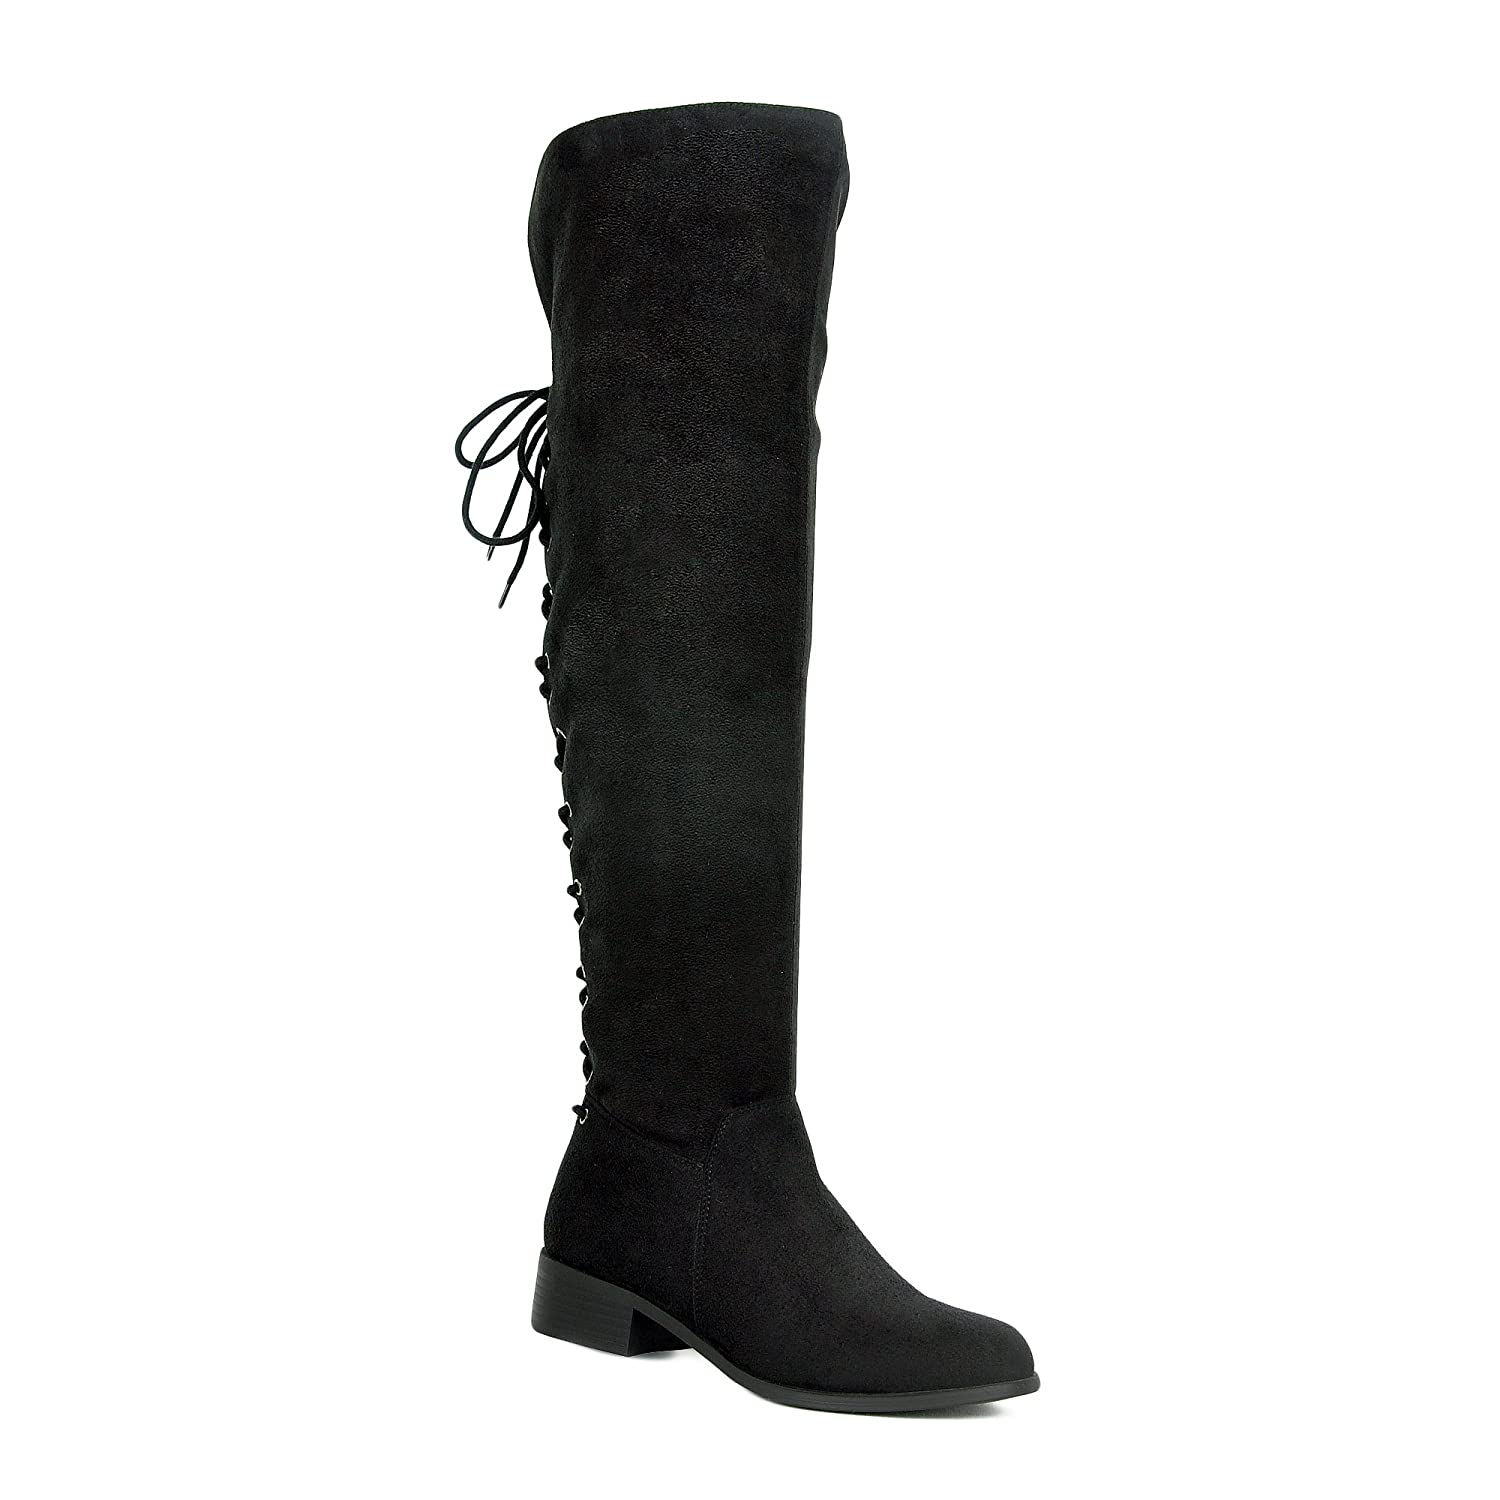 Women's Black Faux Suede Over the Knee Back Corset Lace-up Fold Over Cuff Flat Heel Boots - DeluxeAdultCostumes.com